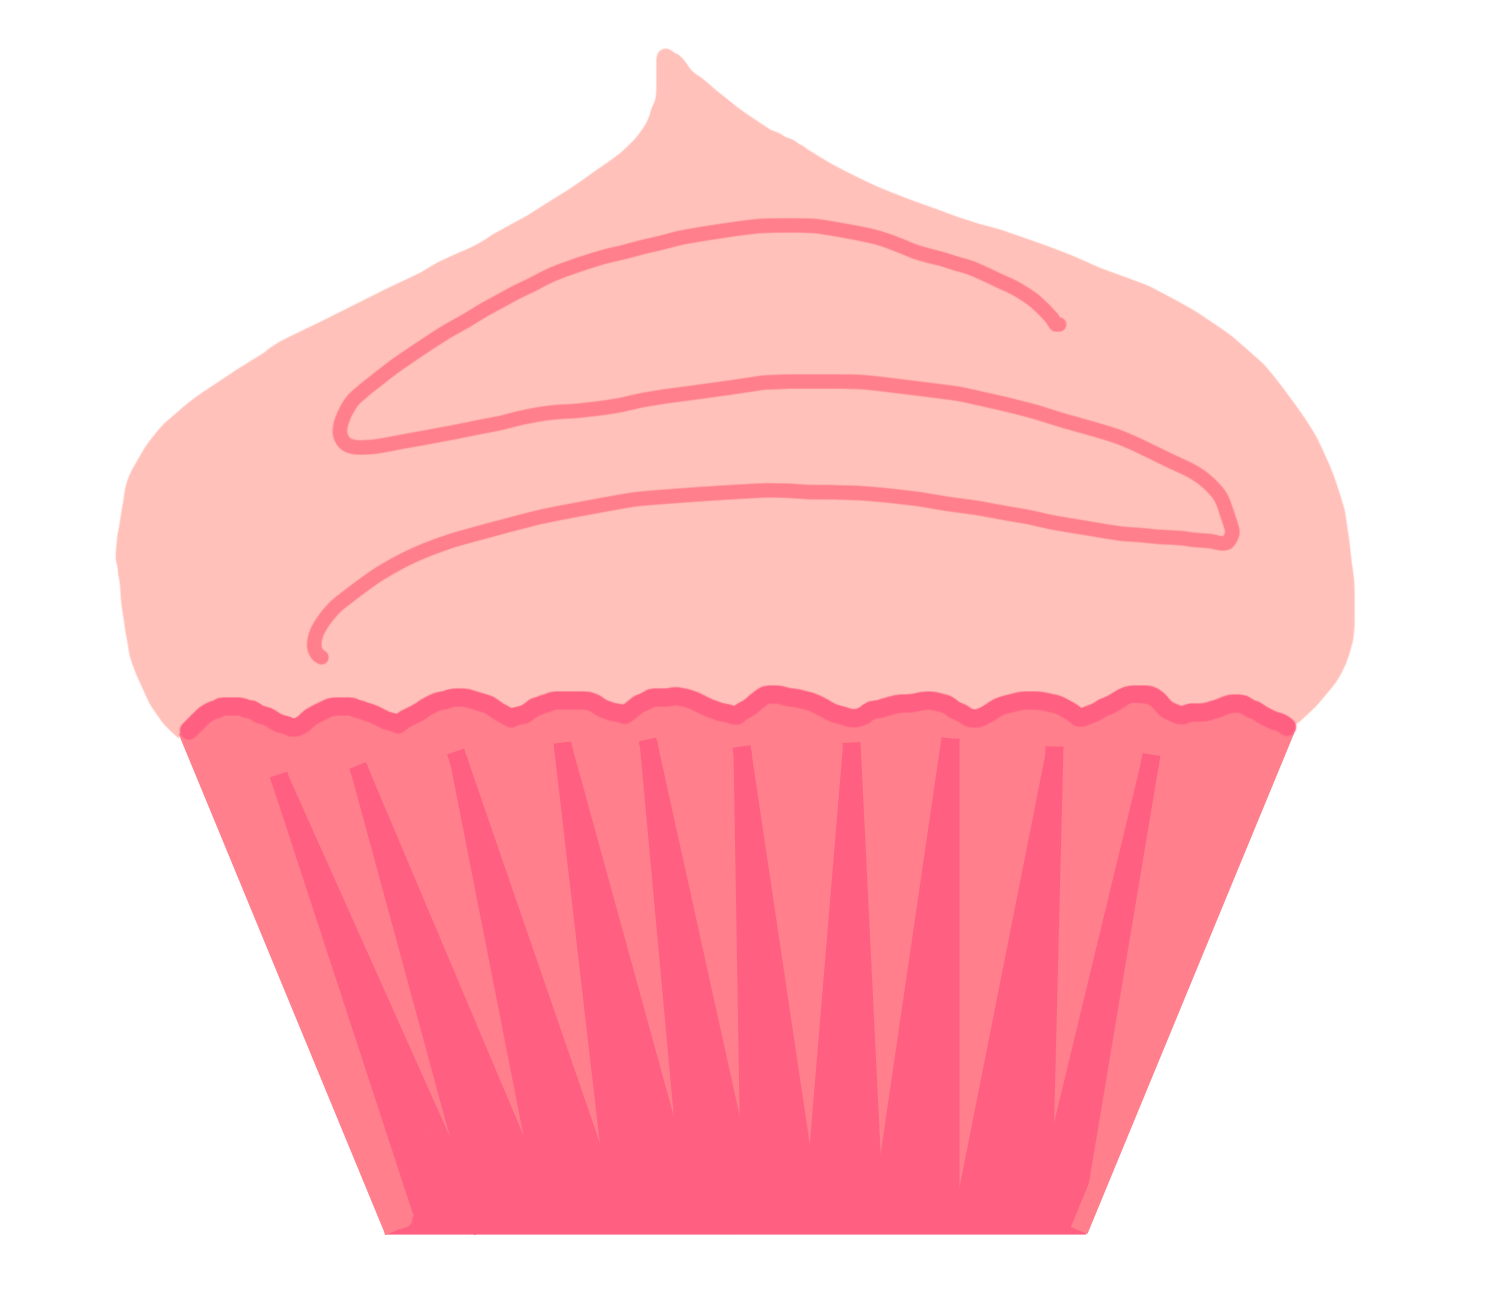 Cupcakes danasrhi top clipartix. Swan clipart crown silhouette clip library library